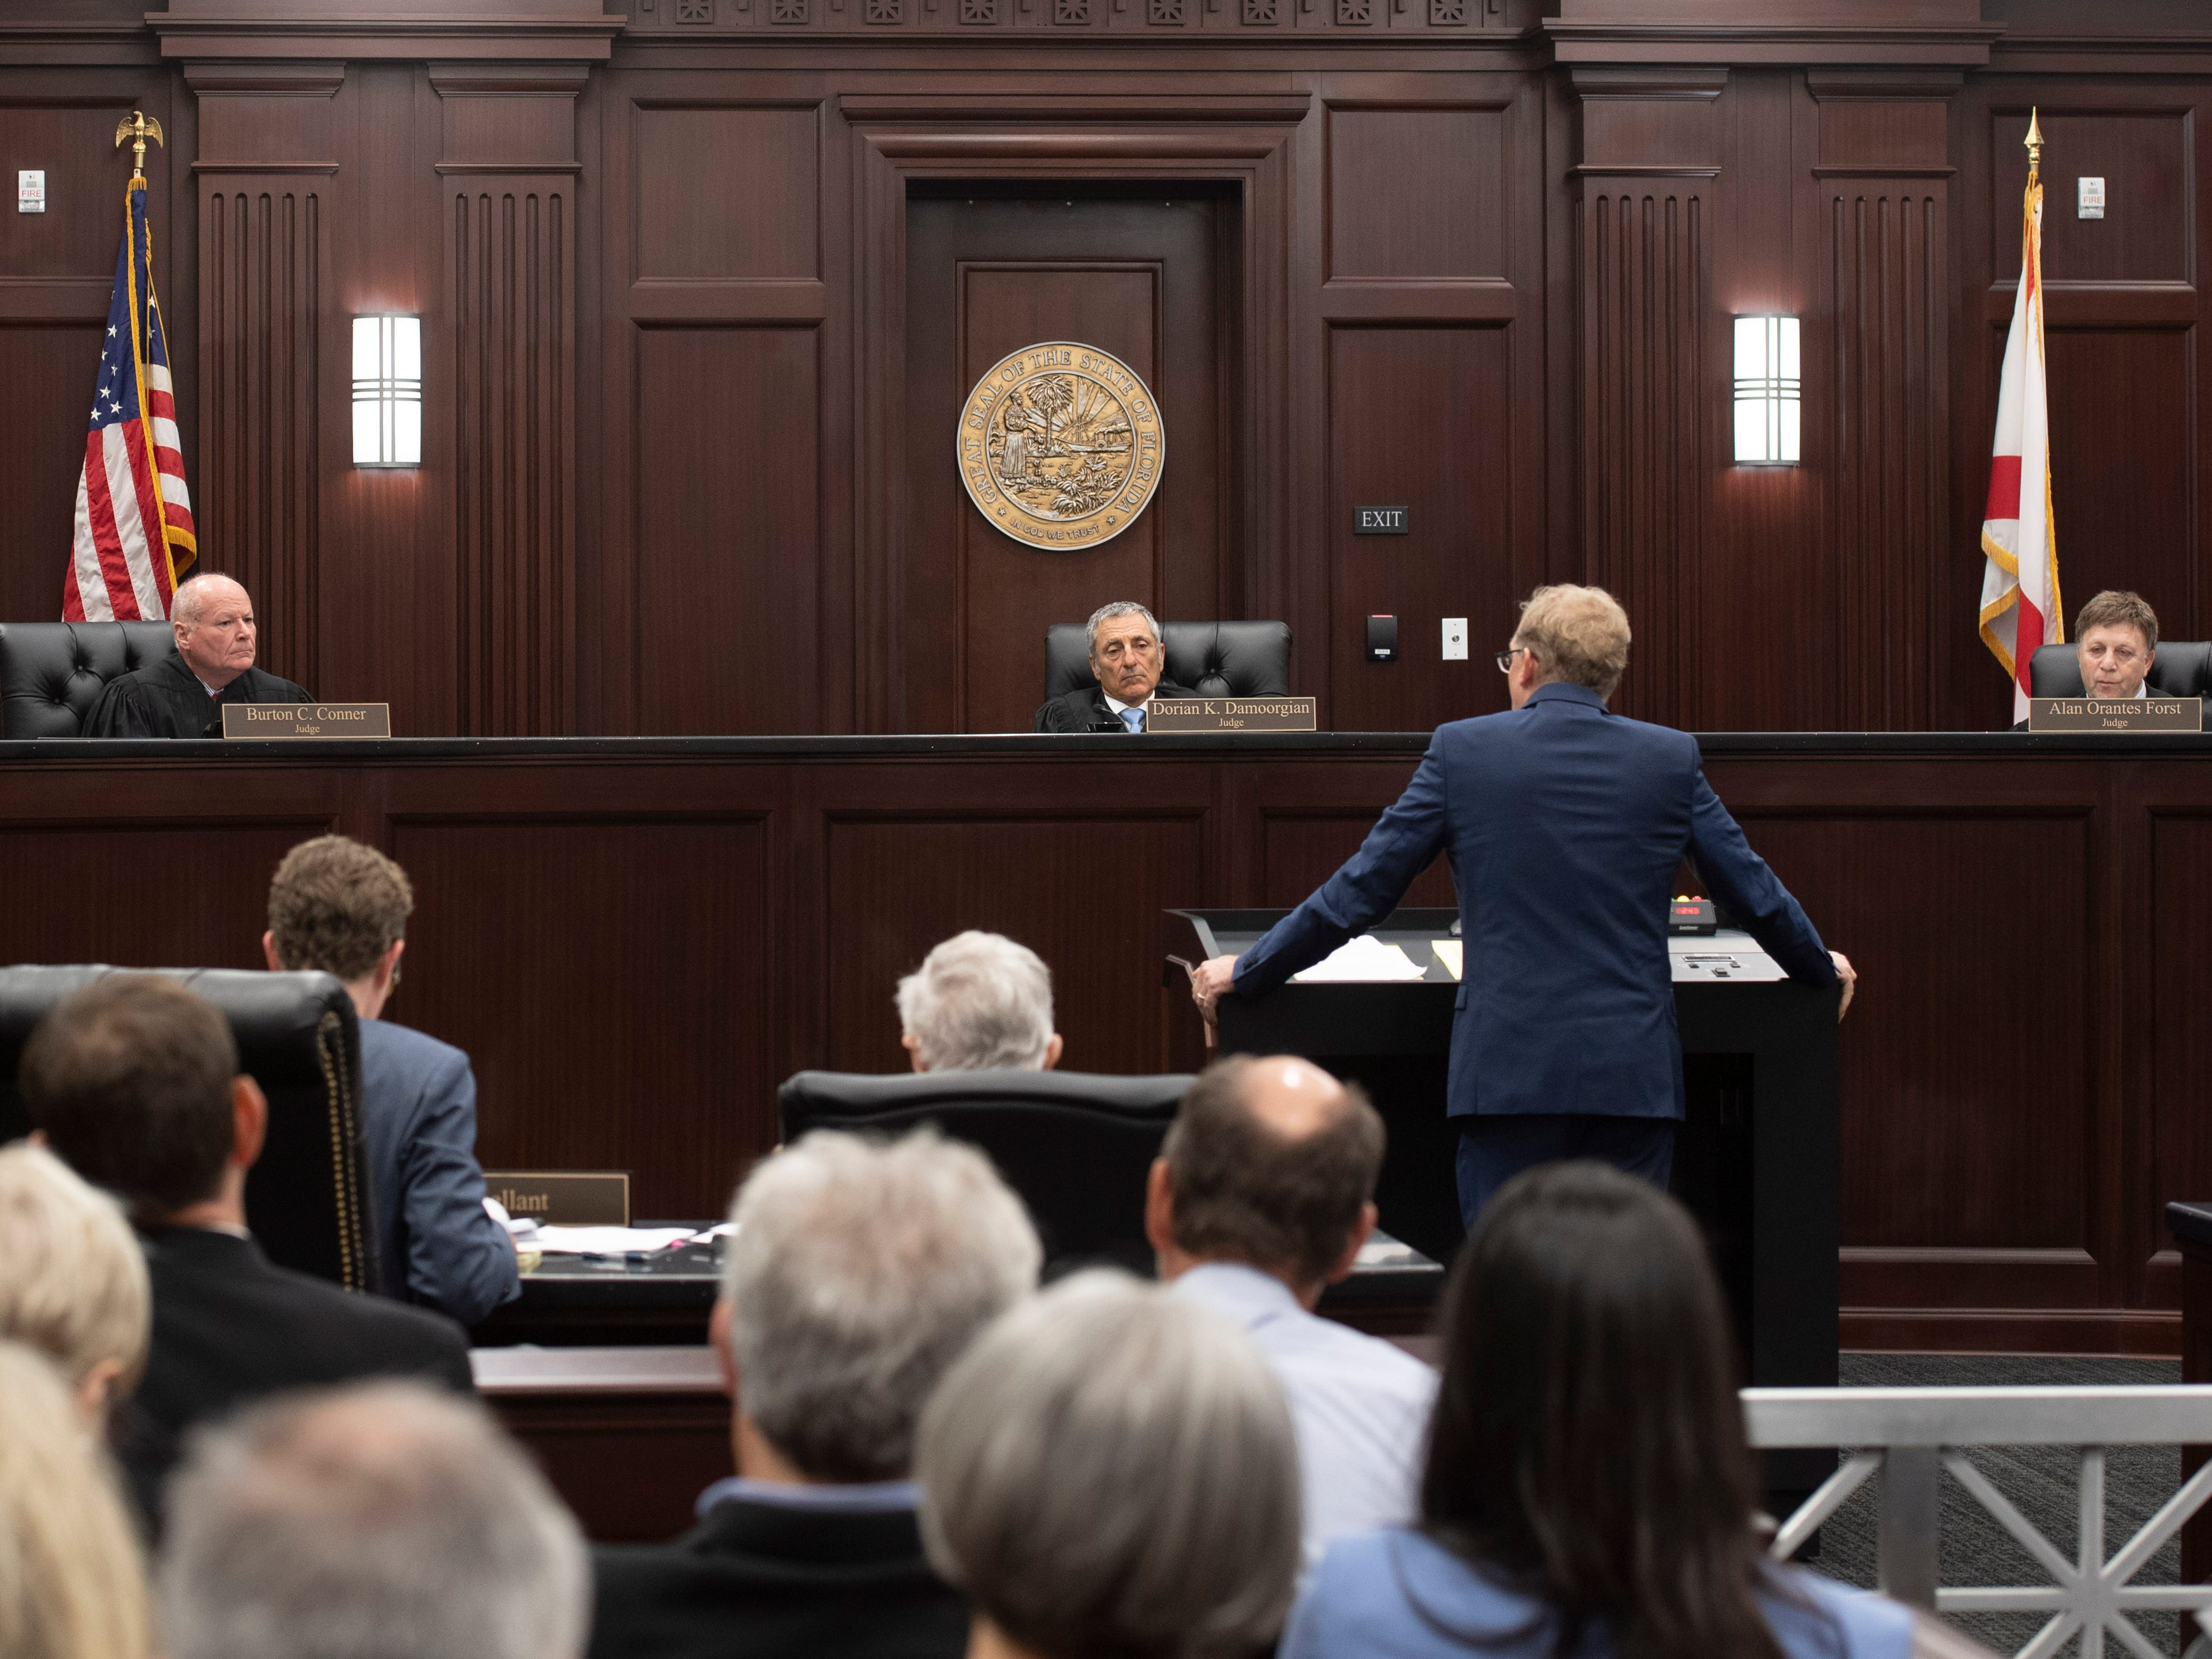 Lake Point attorney Jon Tasso addresses Fourth District Court of Appeal judges (from left) Burton C. Conner, Dorian K. Damoorgian and Alan O. Forst during Martin County environmentalist and former commissioner Maggy Hurchalla's appeal of a jury's decision that she owes $4.4 million to Lake Point, a rock quarry in western Martin County, during a hearing Tuesday, March 12, 2019, at the courthouse in West Palm Beach.